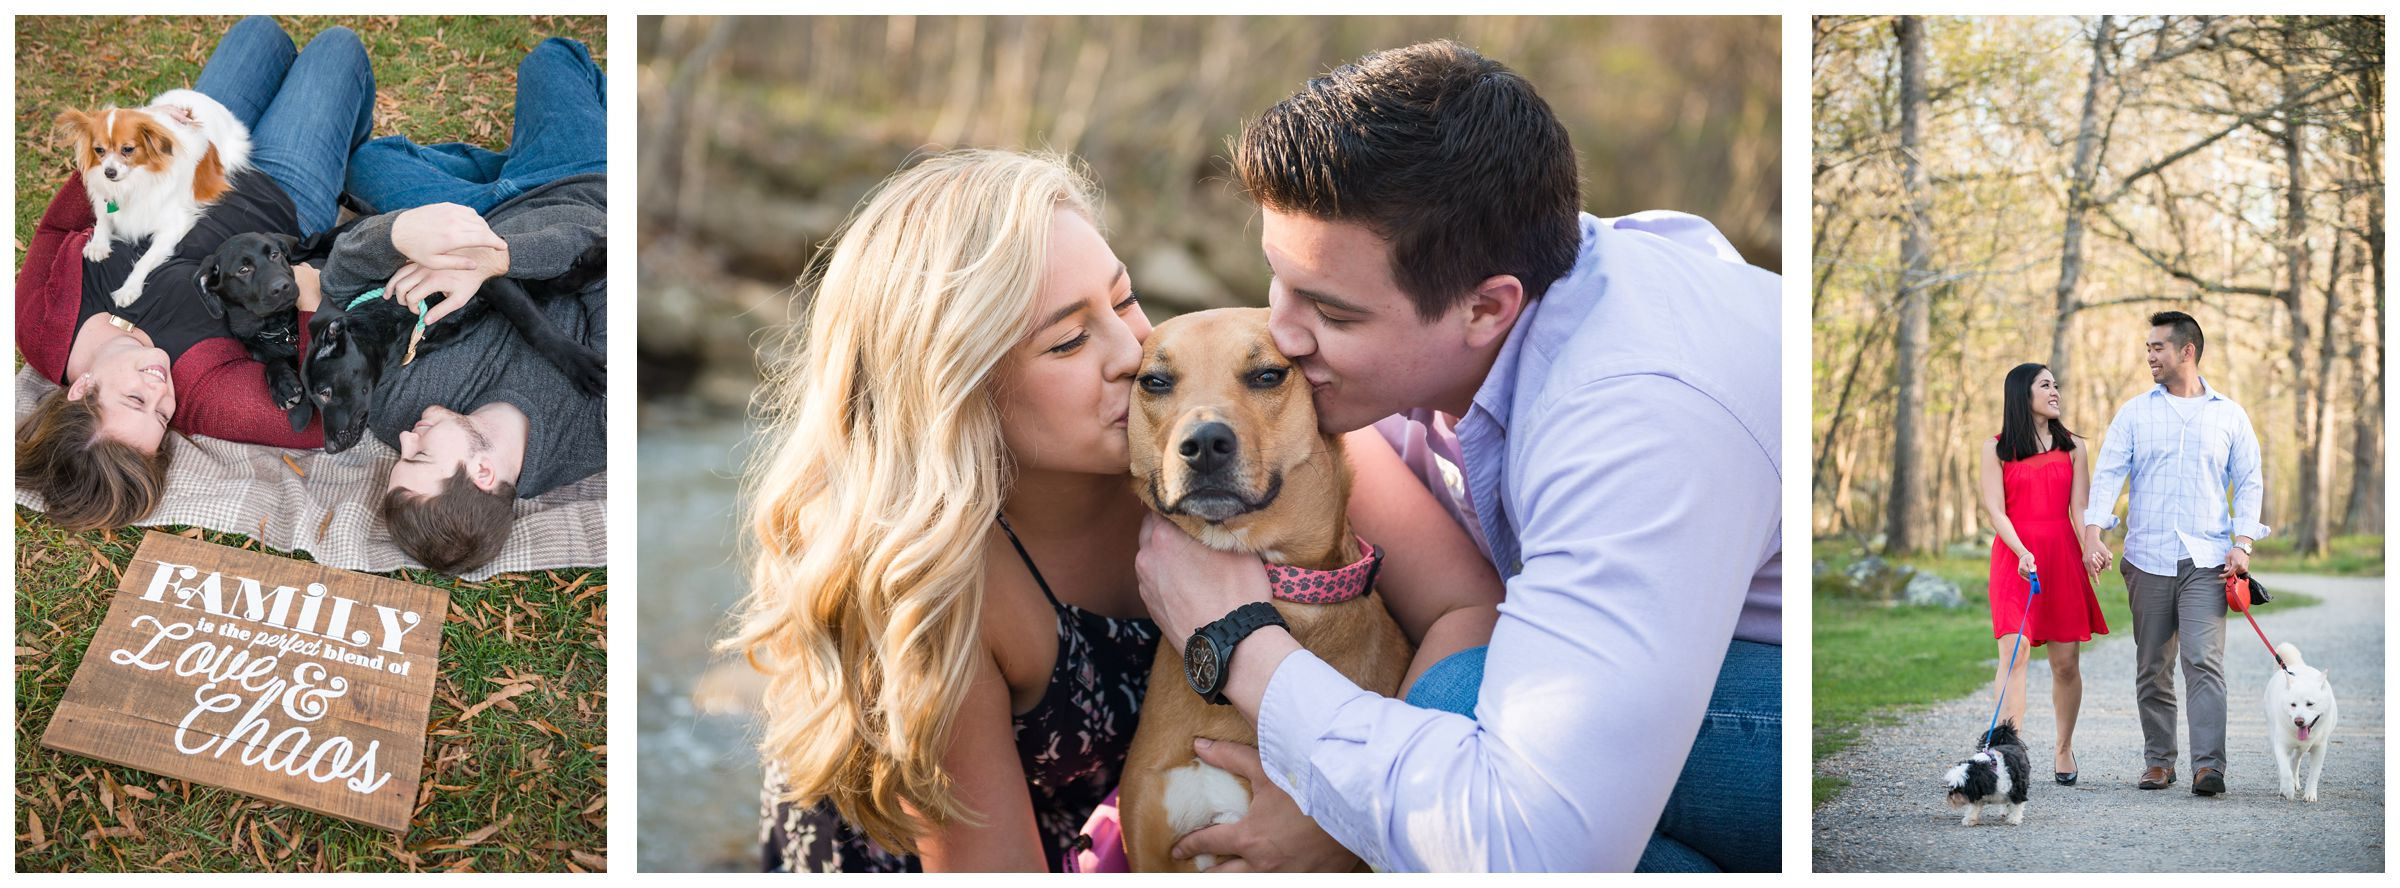 bringing your dog to your engagement session